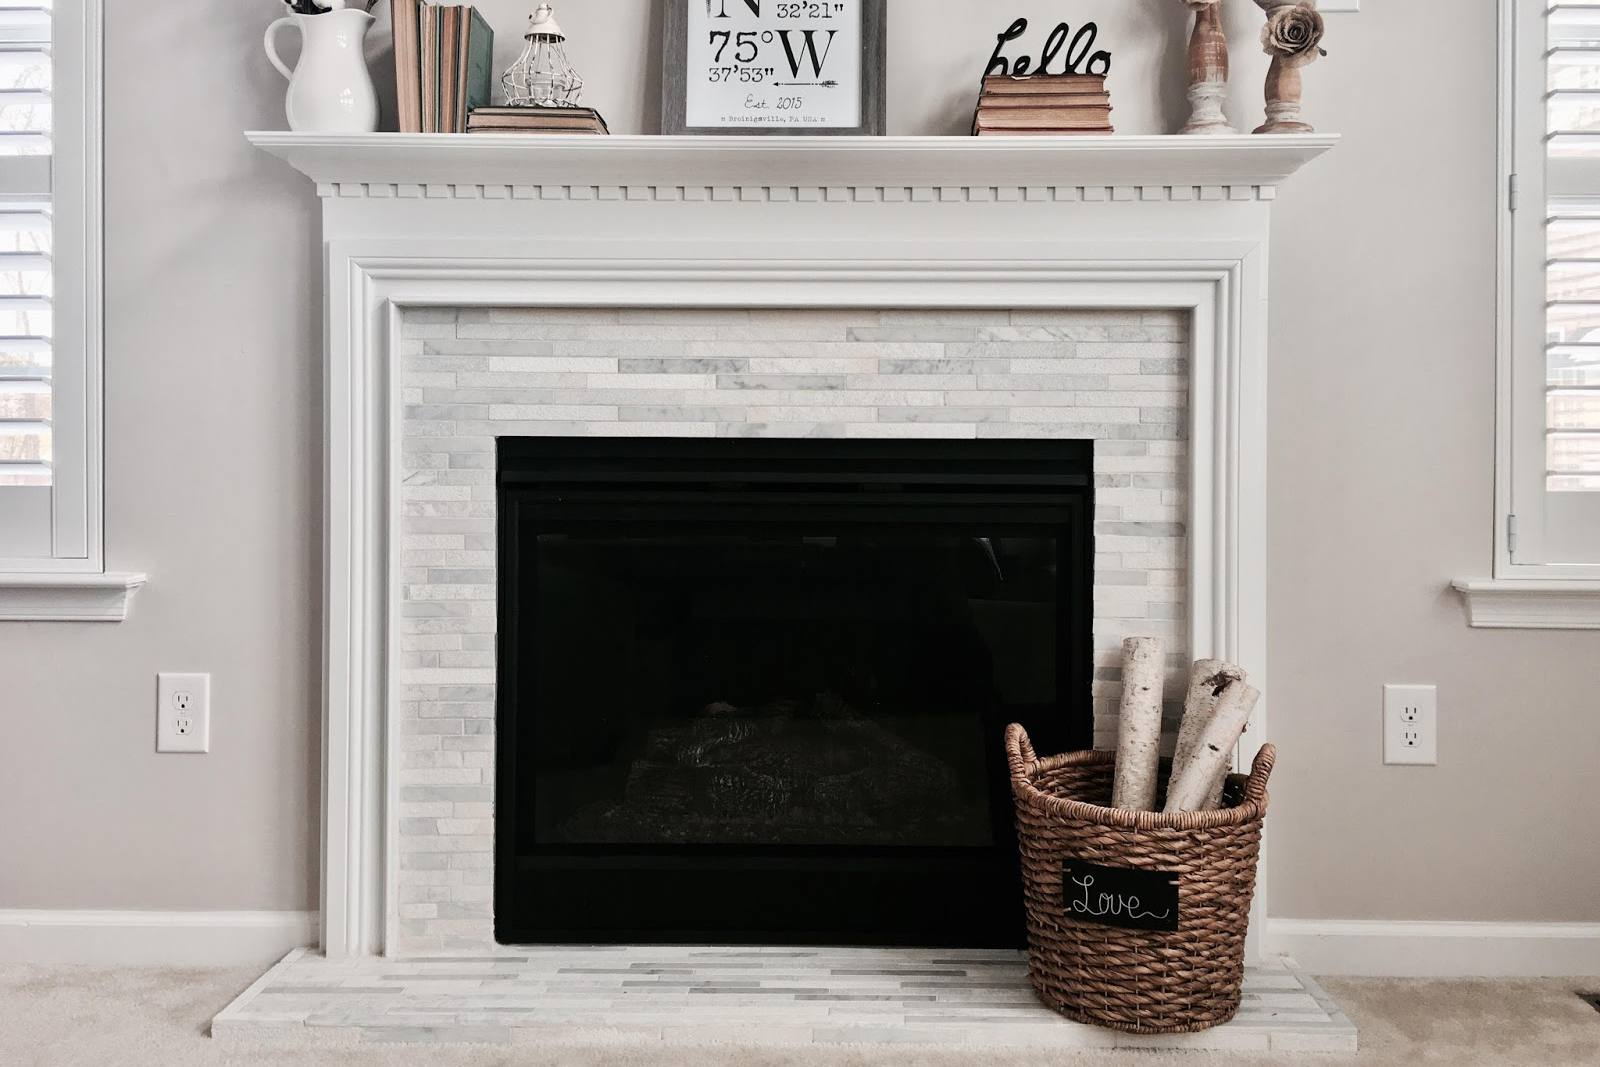 1 narrow textured tile fireplace 2017 59f af5d3a0010b32e57